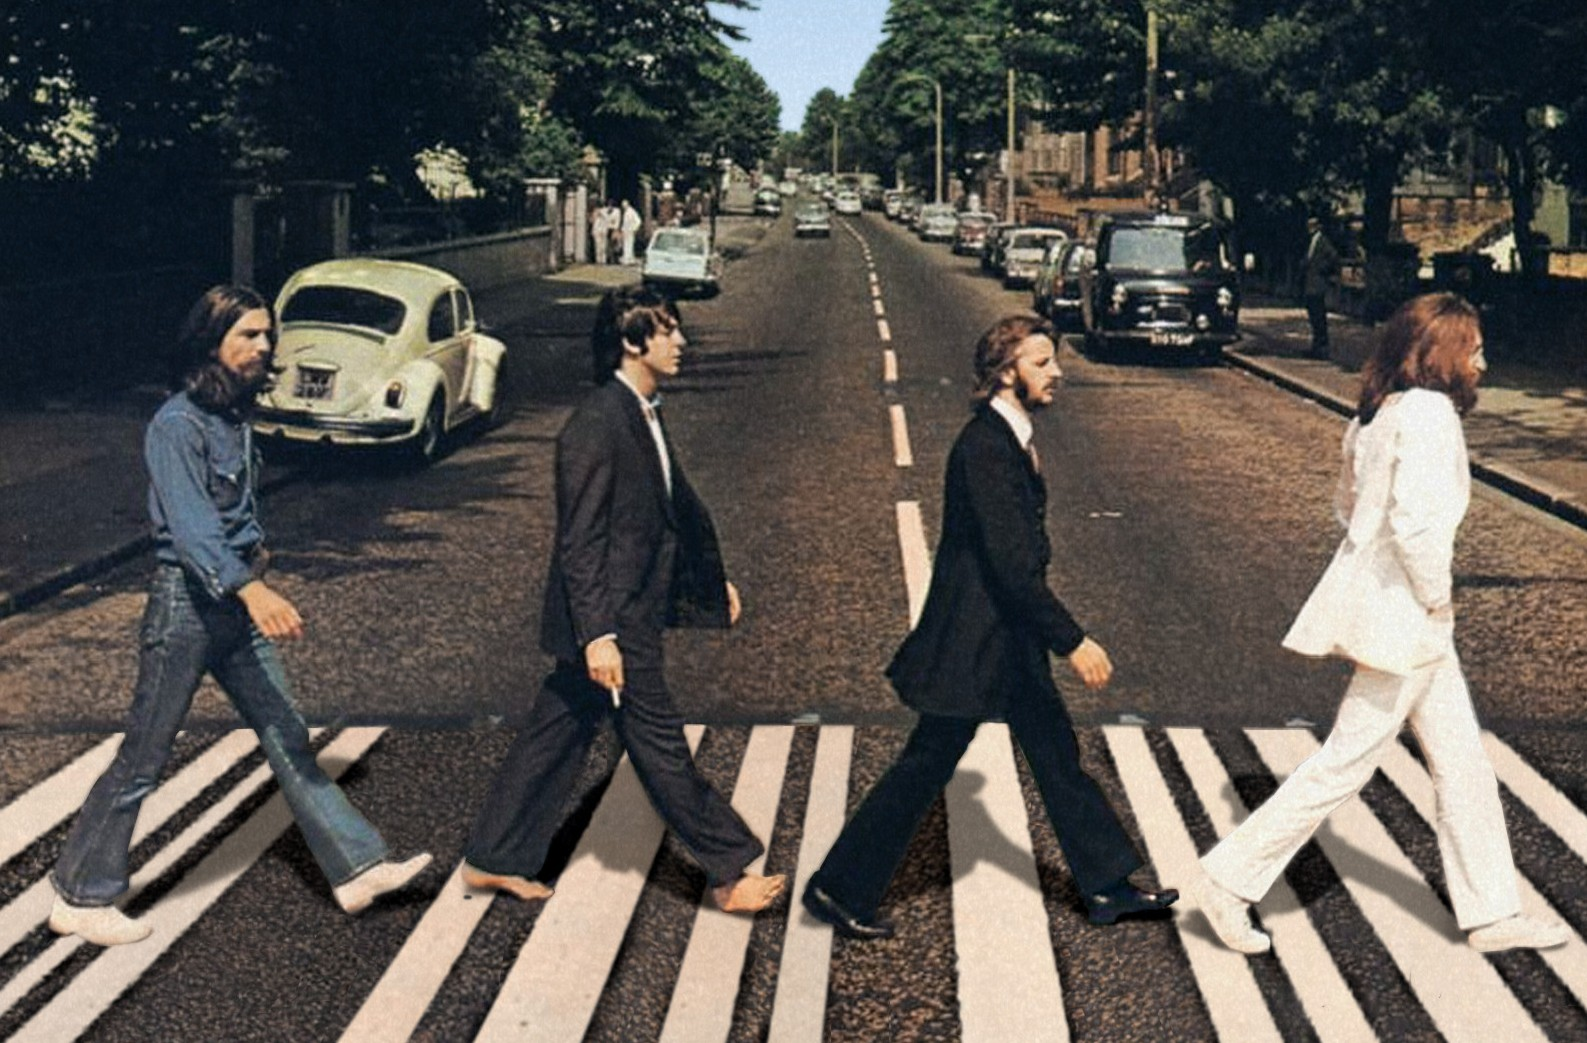 Come together, The Beatles